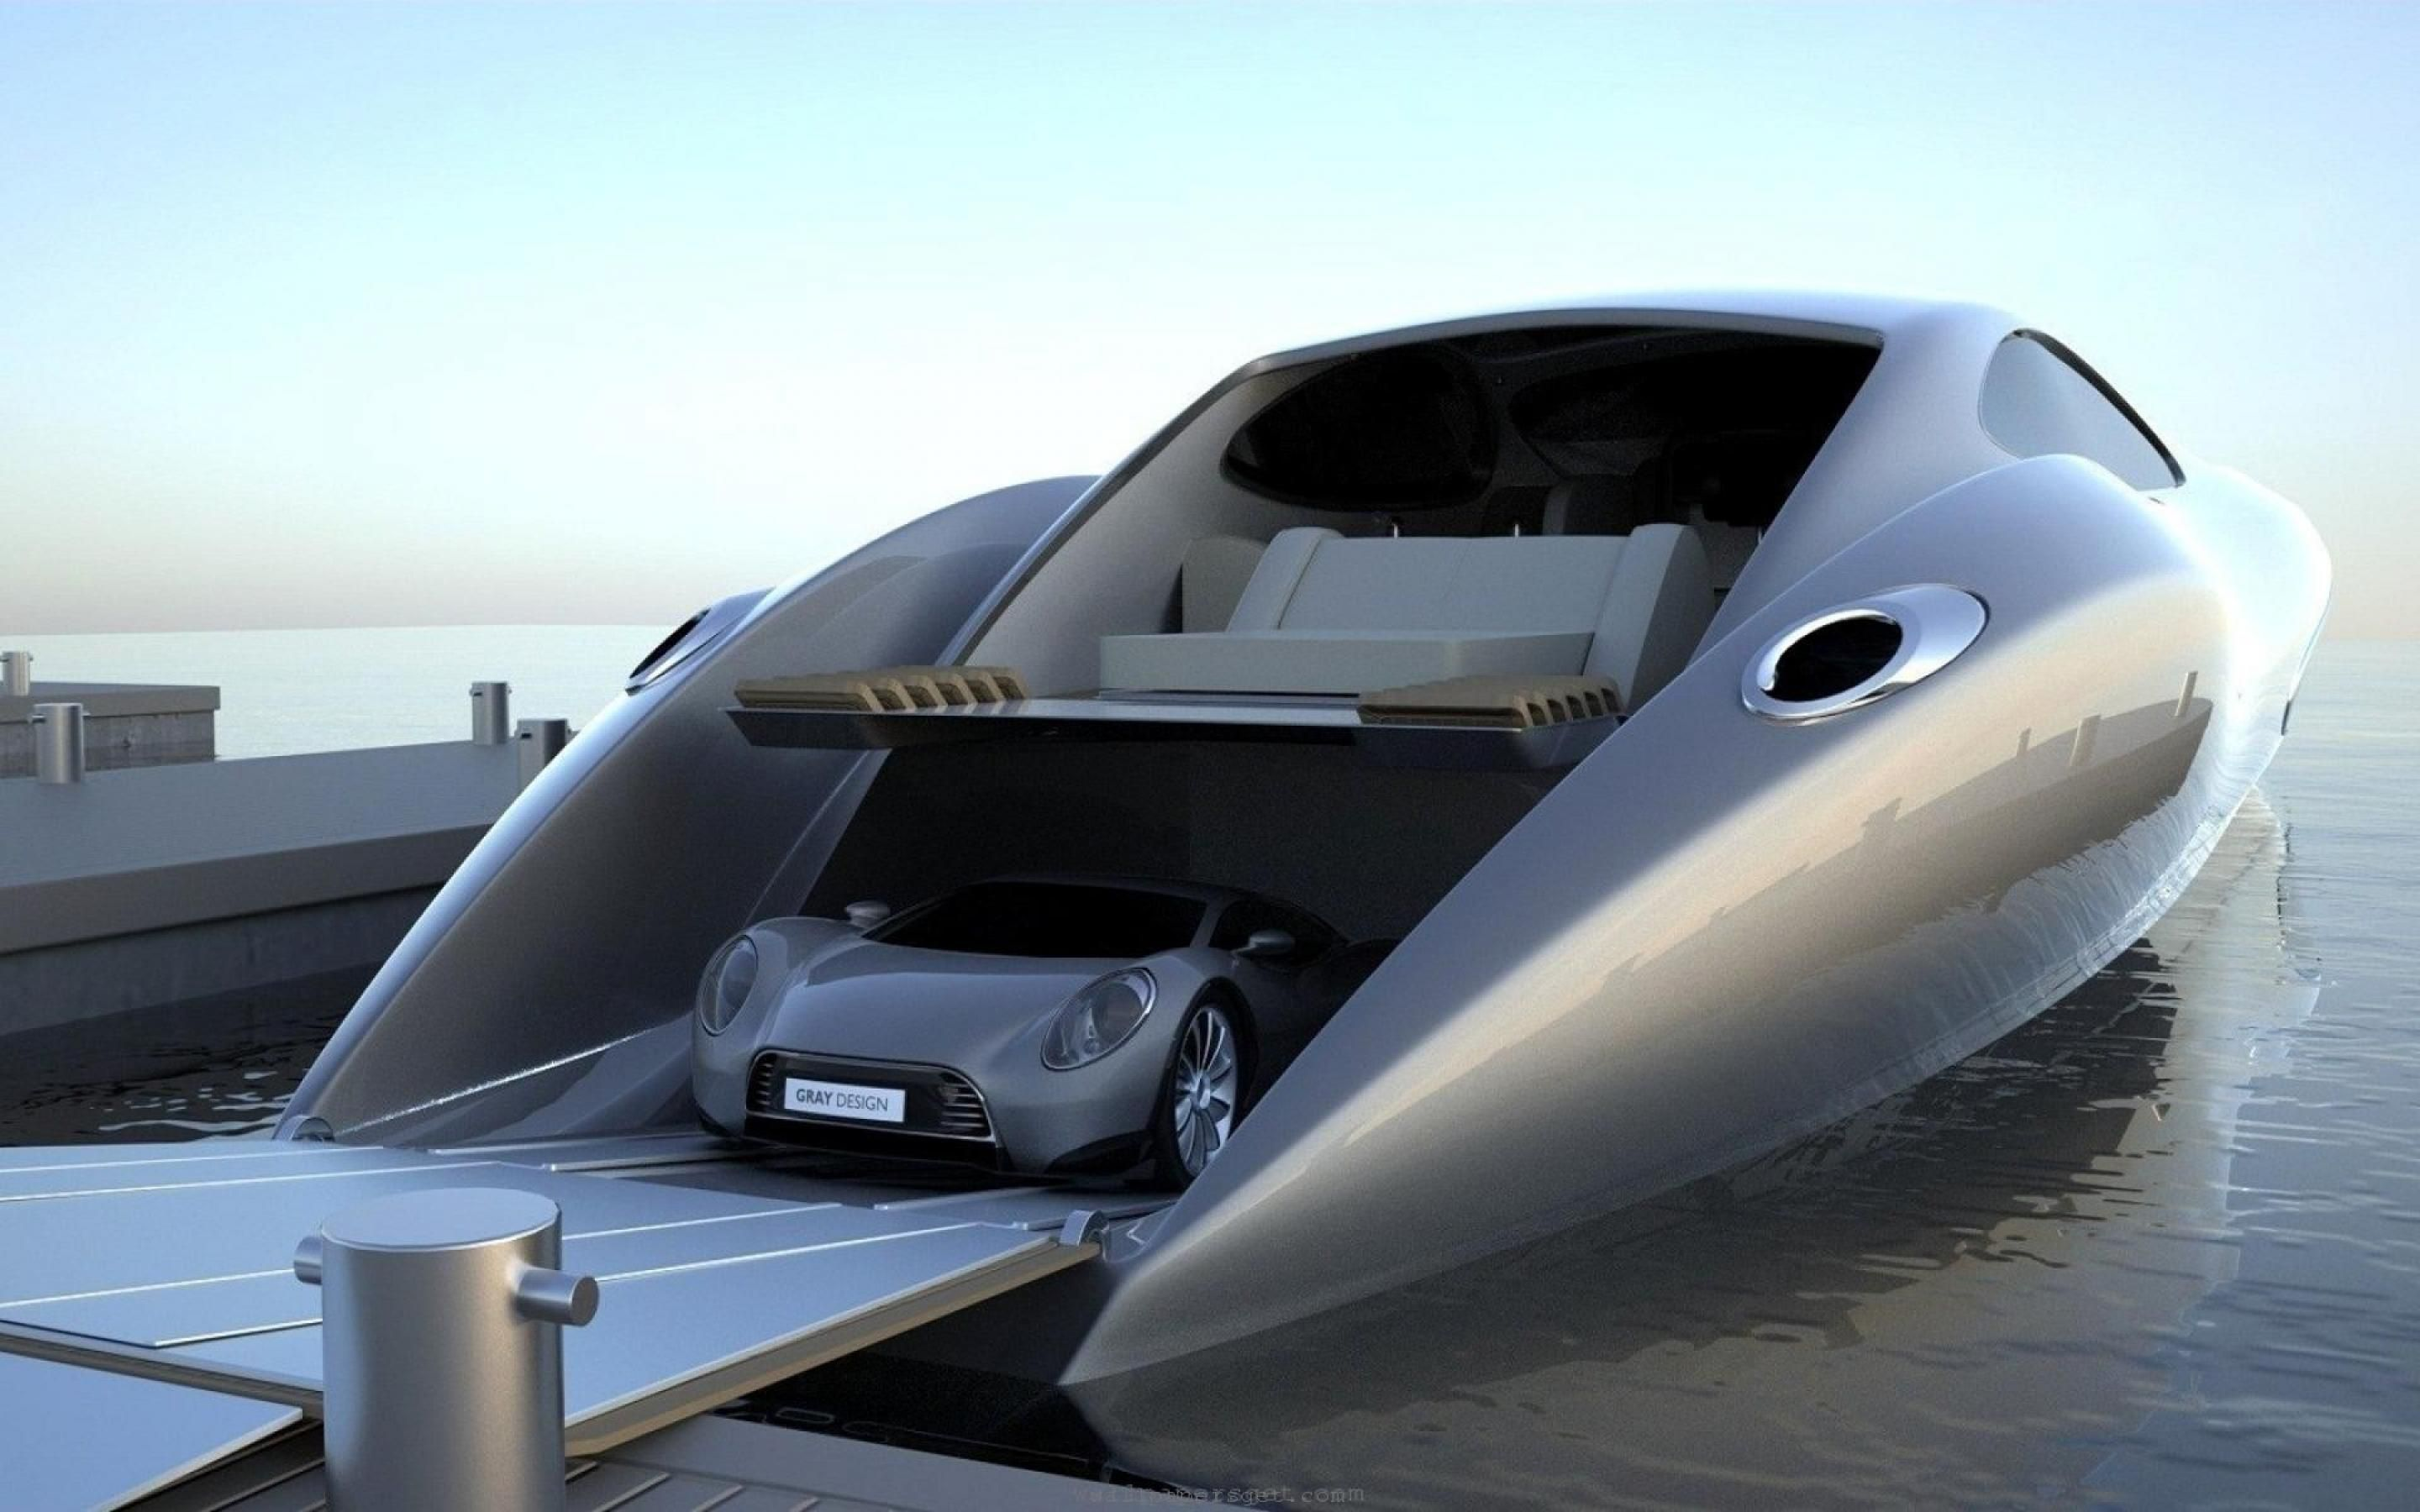 Strand Craft 122 Super Yacht Comes With Supercar And In Boat Garage To Hold It Boat